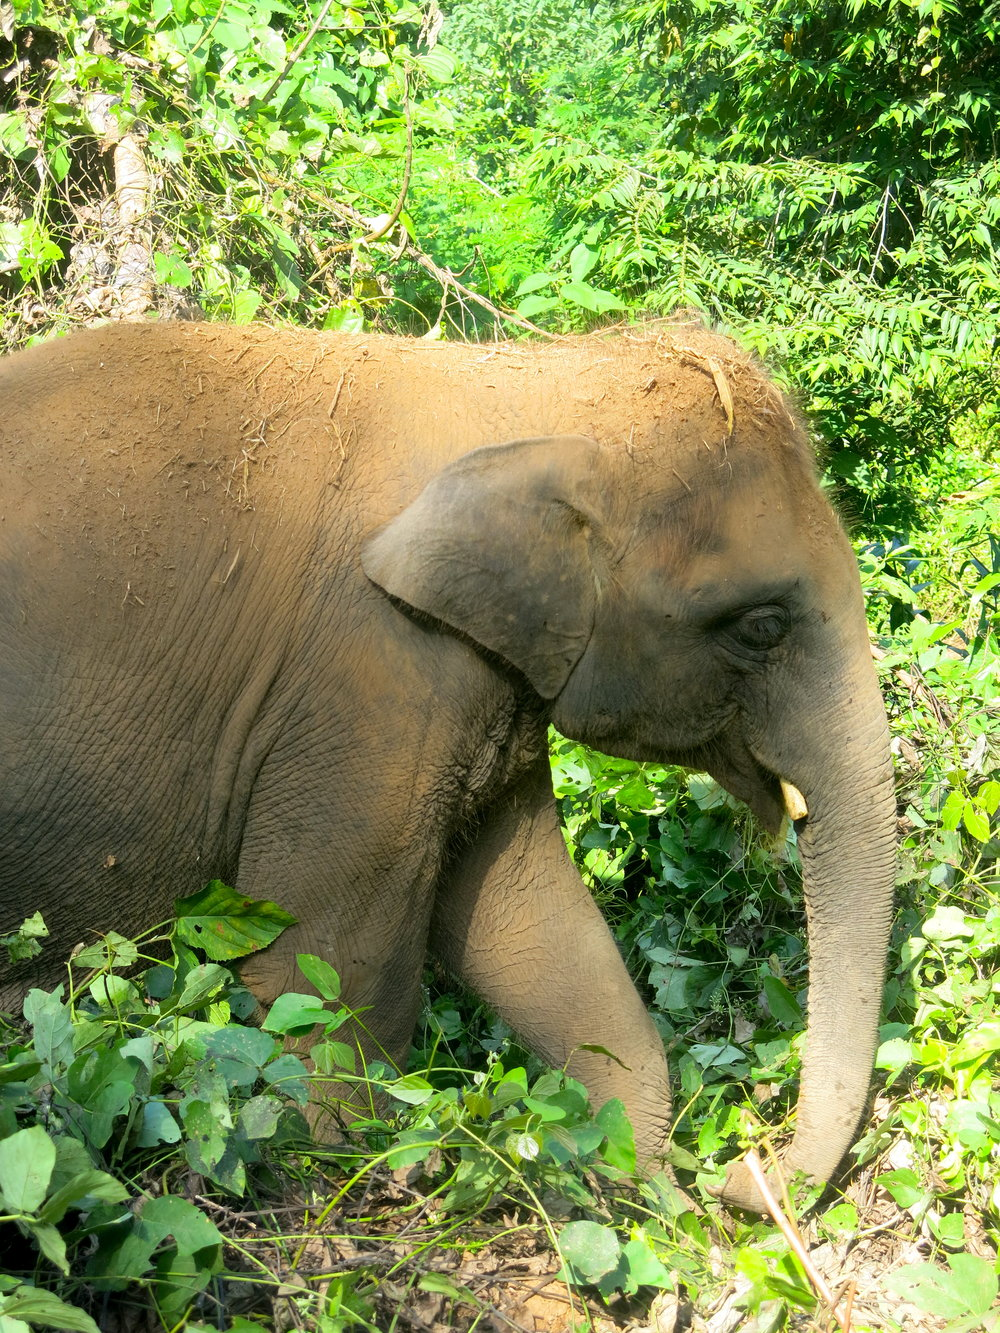 The 5 elephants were saved by the association from mistreatment